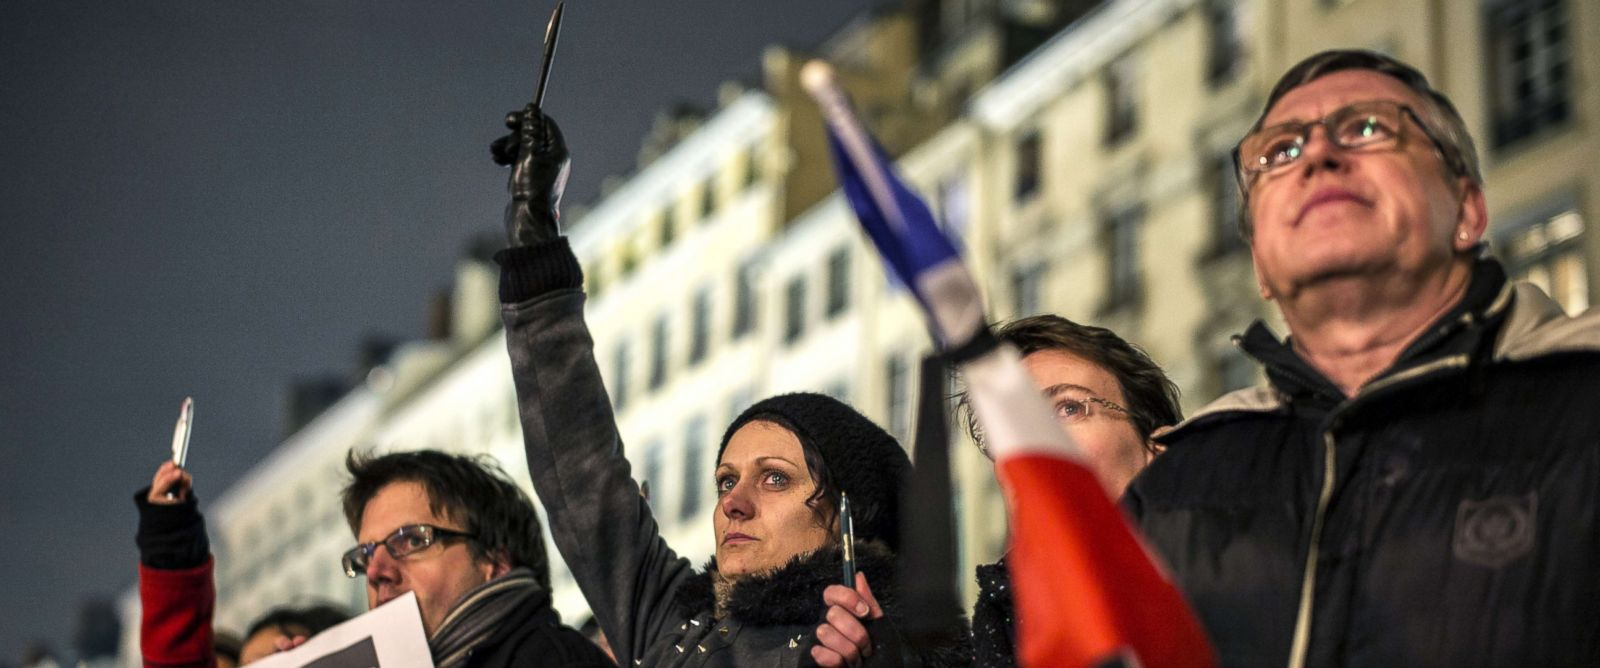 PHOTO:A woman cries as she holds up a pen during a vigil in Lyon on January 7, 2015, following an attack by gunmen on the offices of the satirical weekly, Charlie Hebdo in the capital.